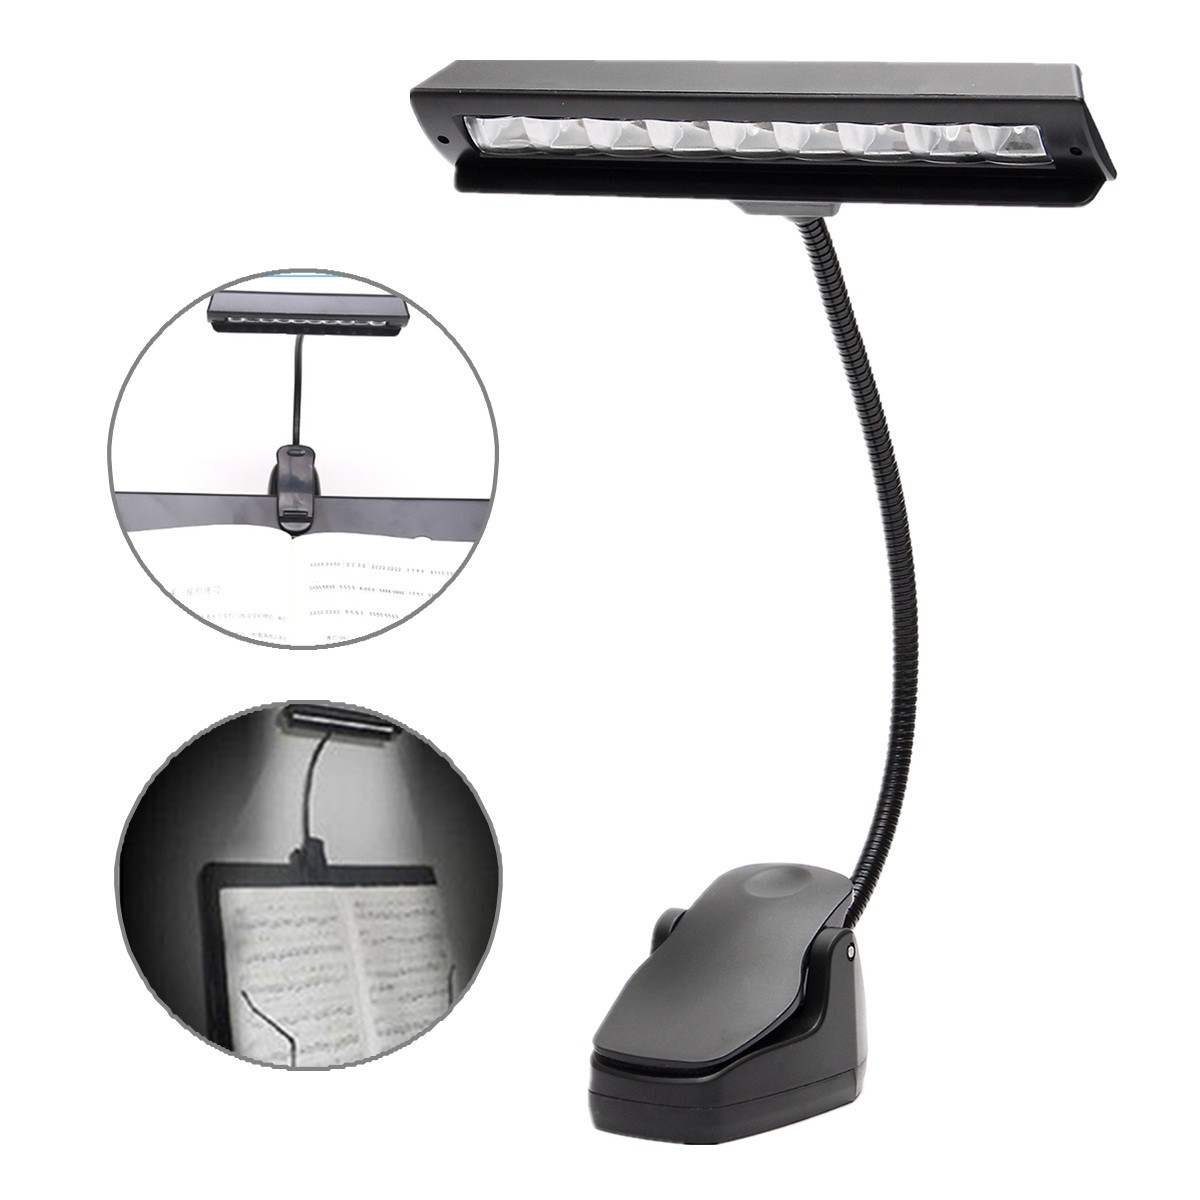 Bedside Lamp Flexible Clip On Music Stand Clamp USB Battery Power Night Light Student Table Desk Reading Bedroom Home Decor степлер мебельный matrix master 40905